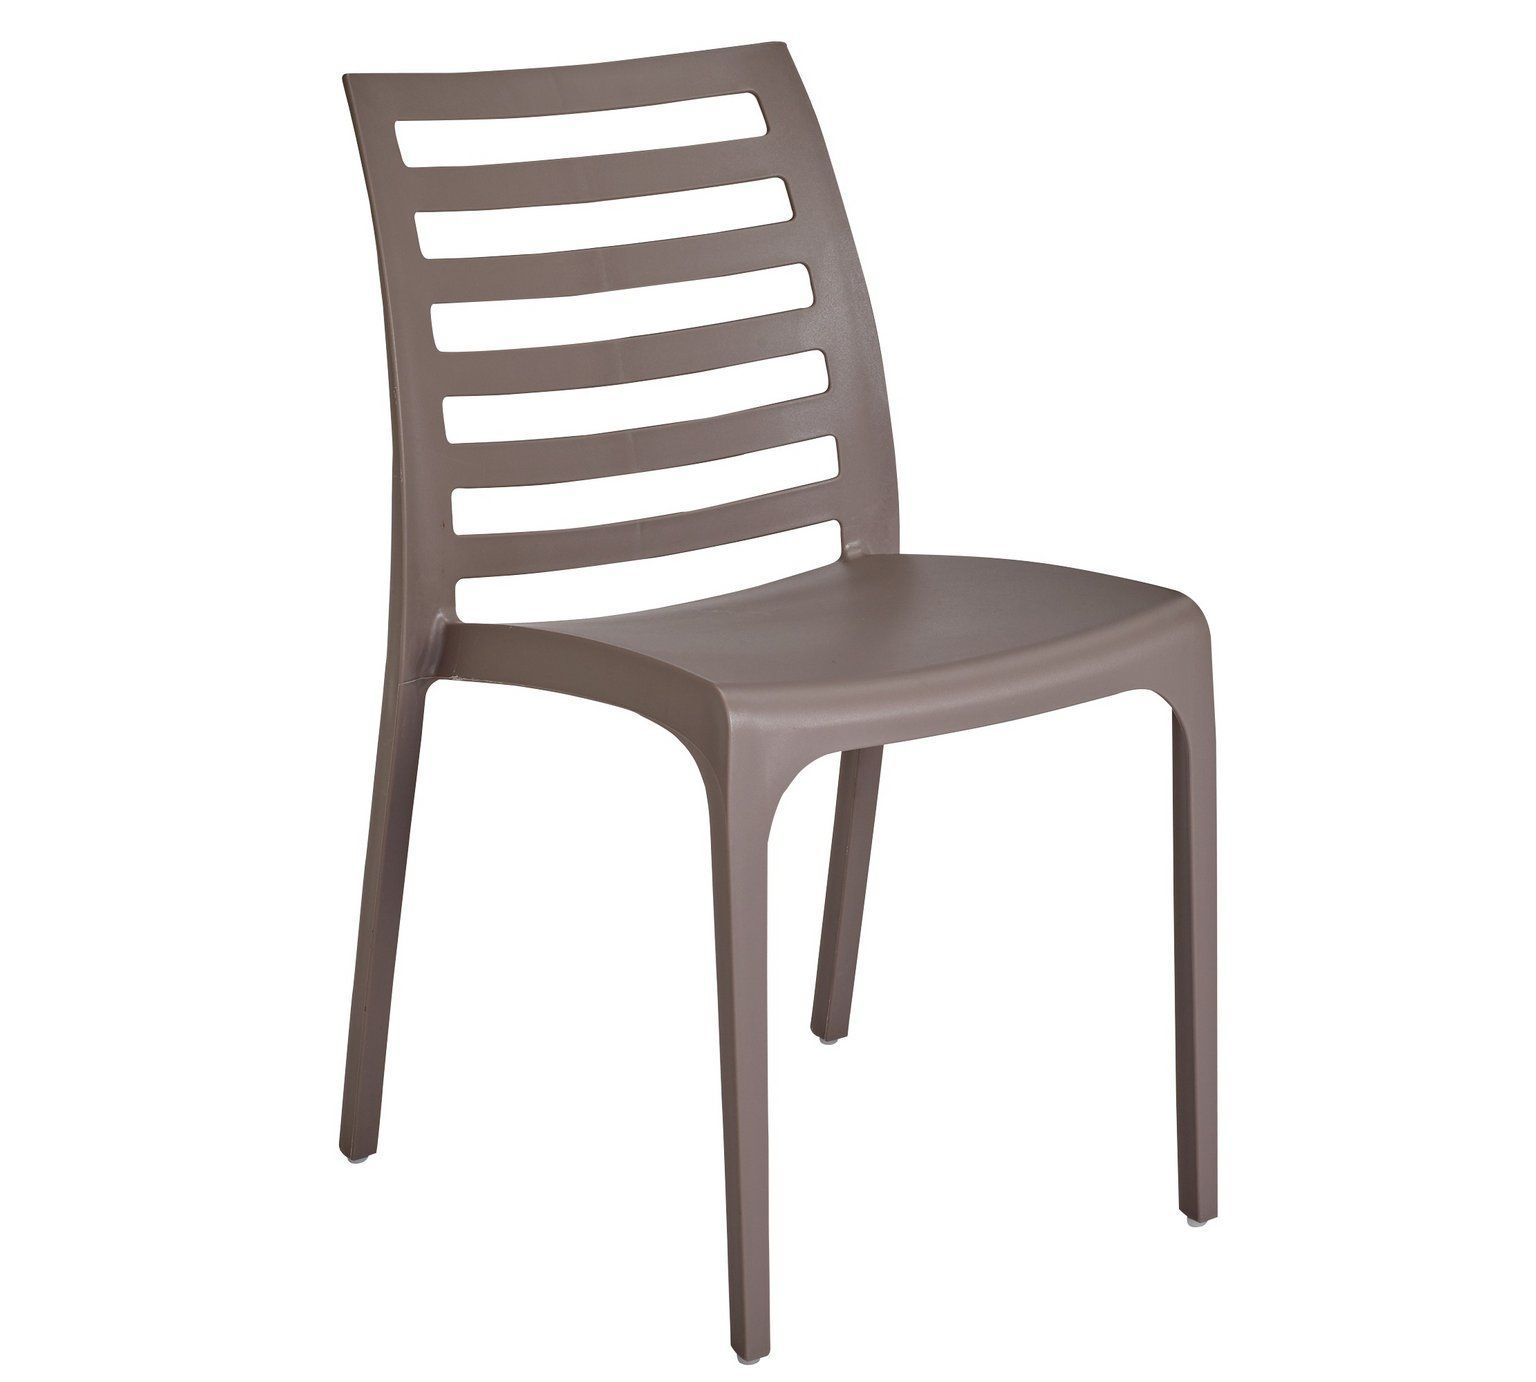 Hygena Stakk Plastic Chair Grey At Argos Co Uk Your